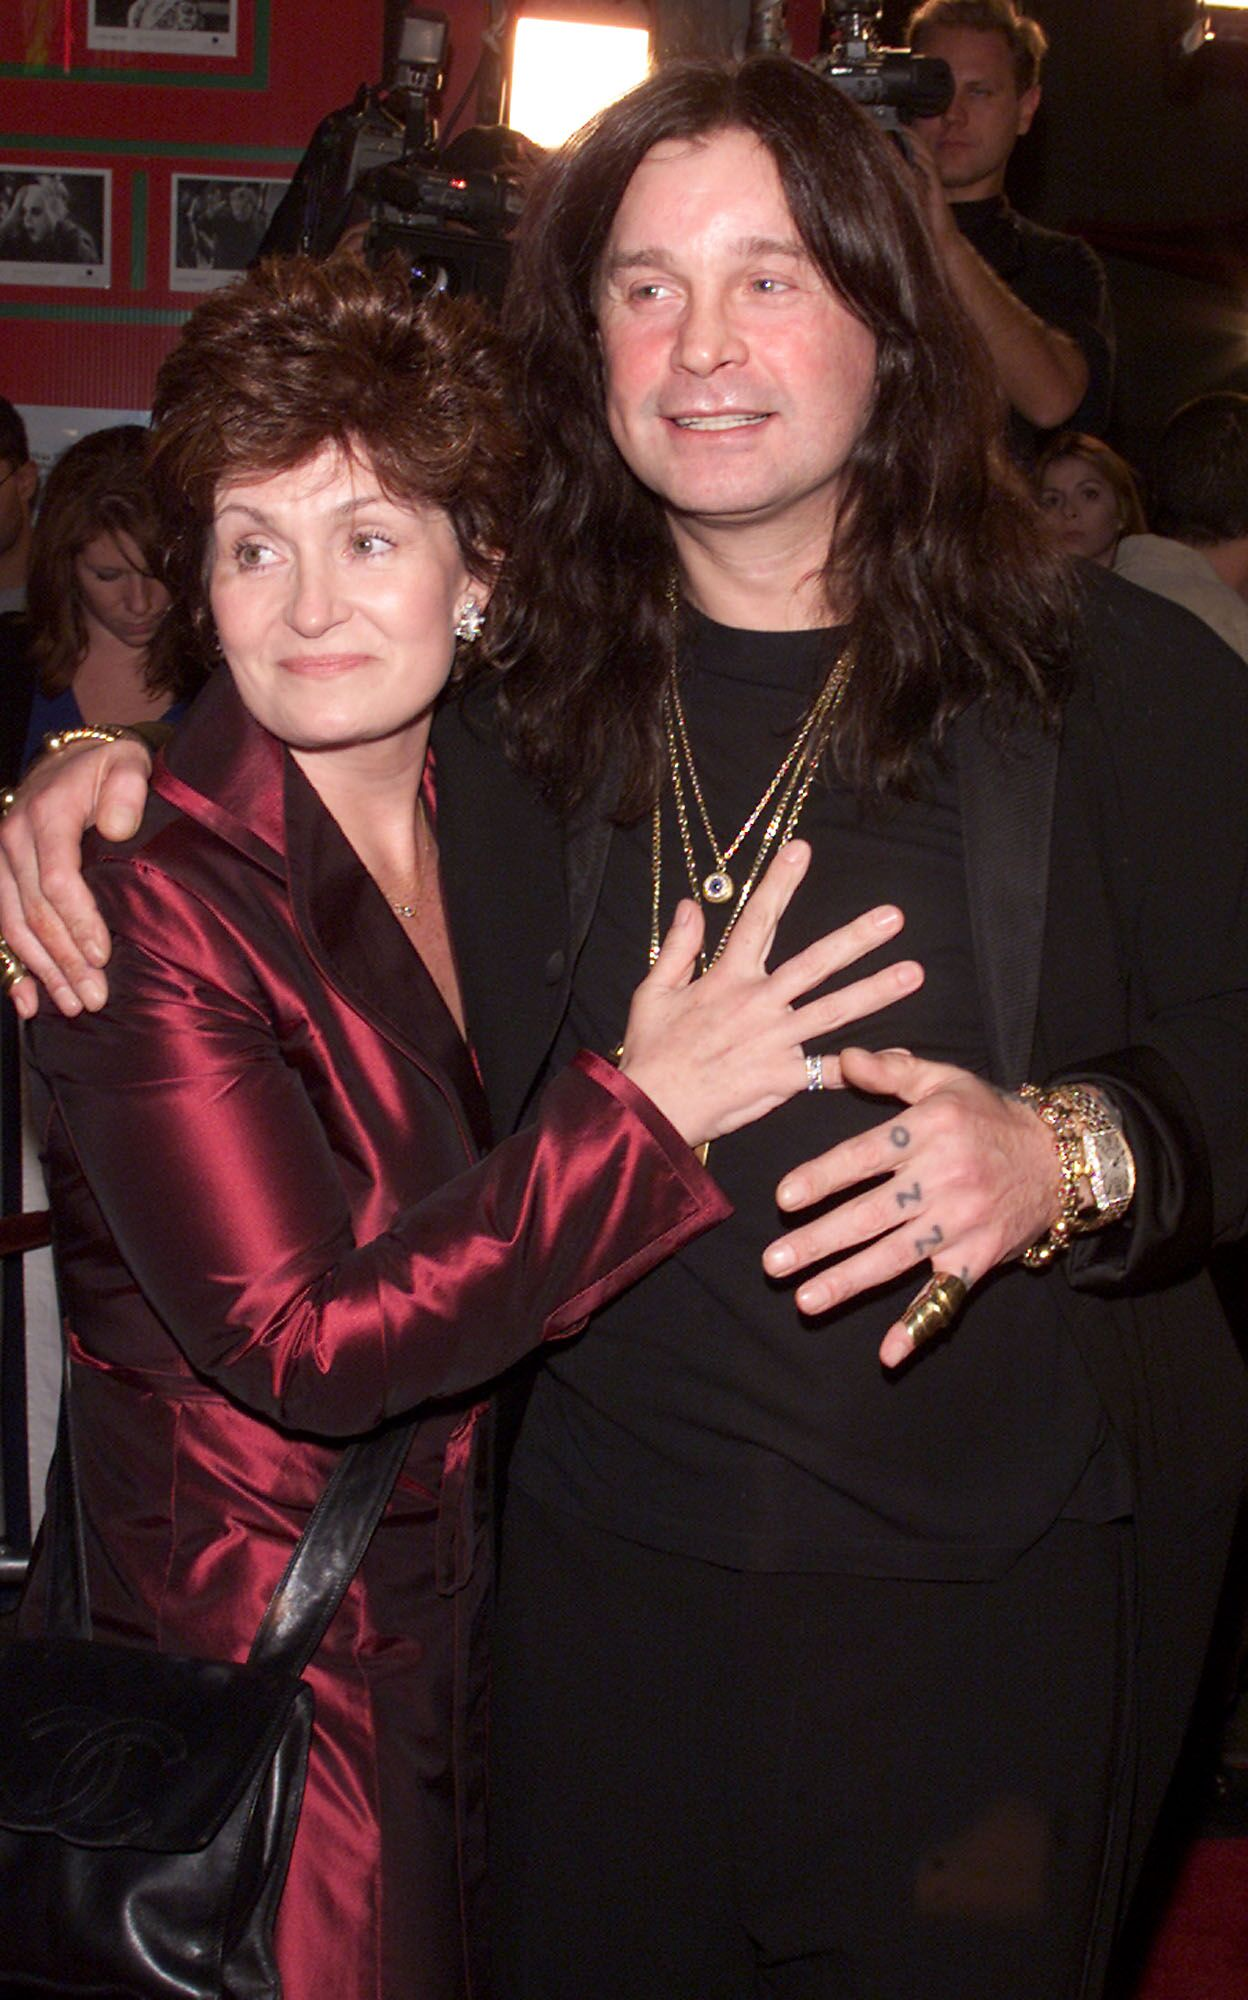 Ozzy Osbourne and his wife Sharon at the premiere of 'Little Nicky' in Los Angeles in 2000 | Source: Getty Images